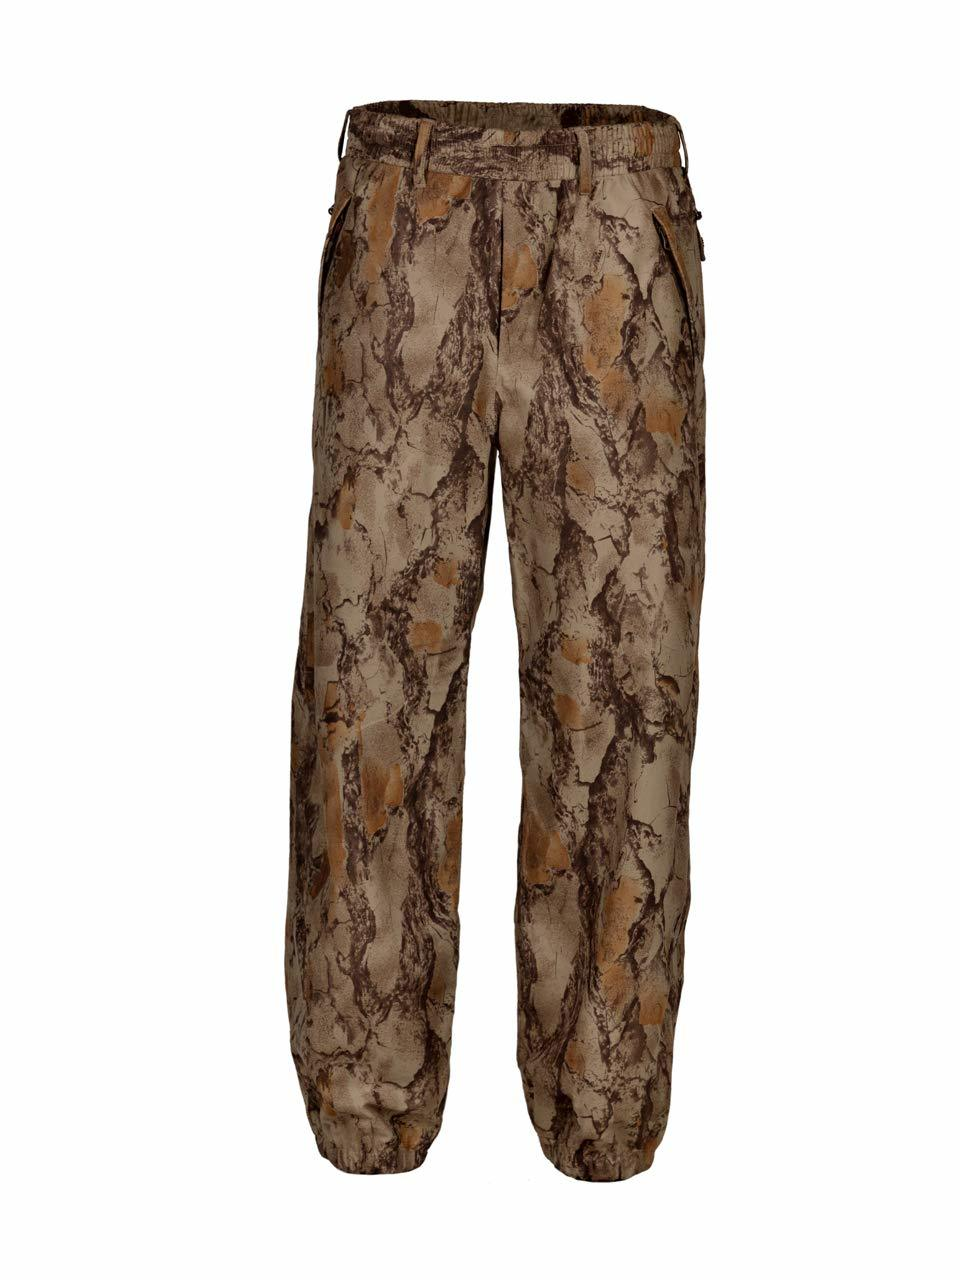 Natural Gear Camouflage Hunting Pants, 100% Waterproof Pants for Men and Women